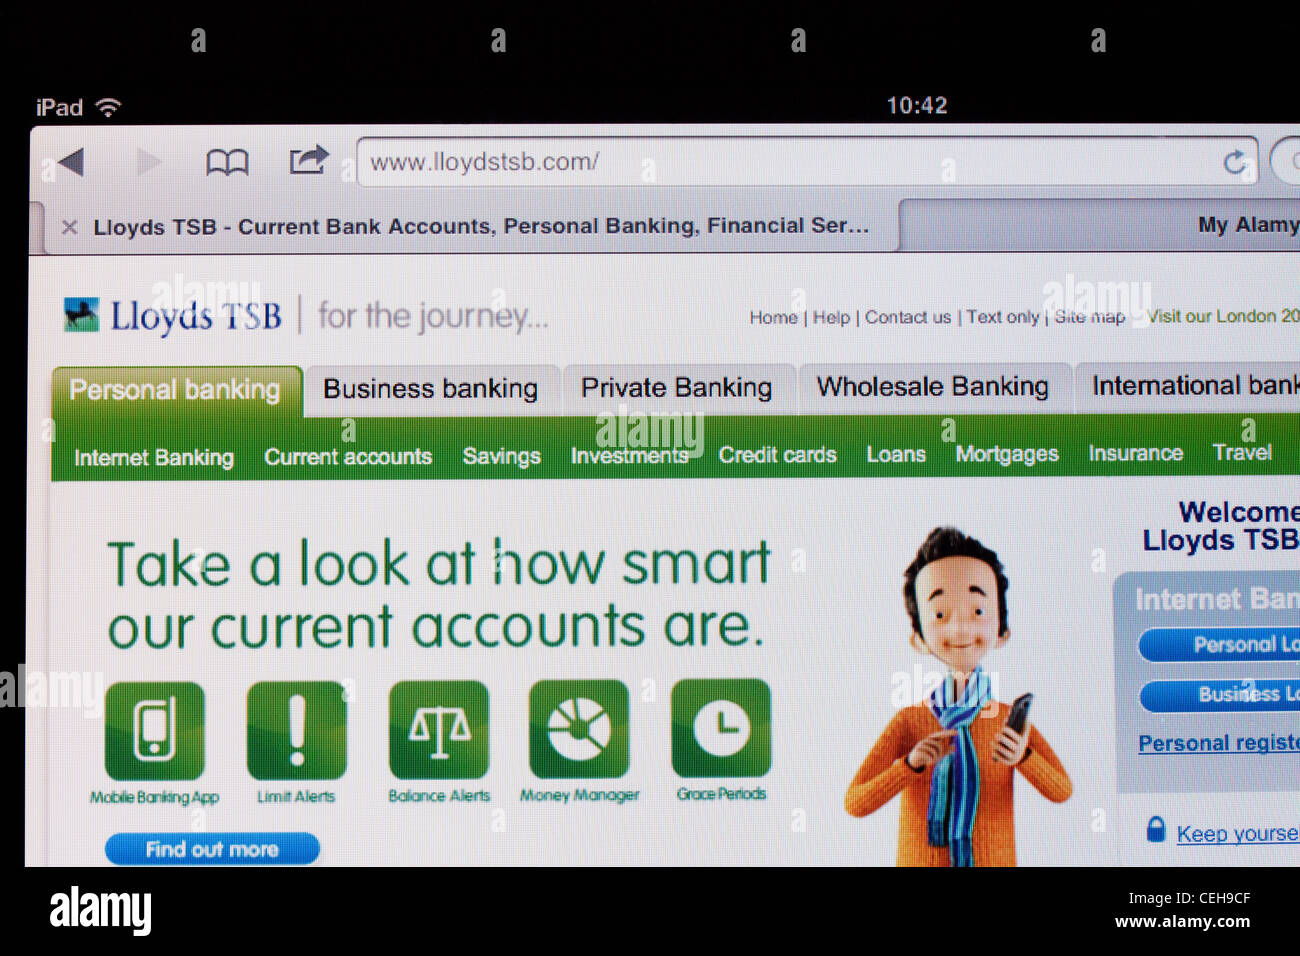 Lloyds TSB Bank website for internet banking online, on an Apple iPad 2 - Stock Image